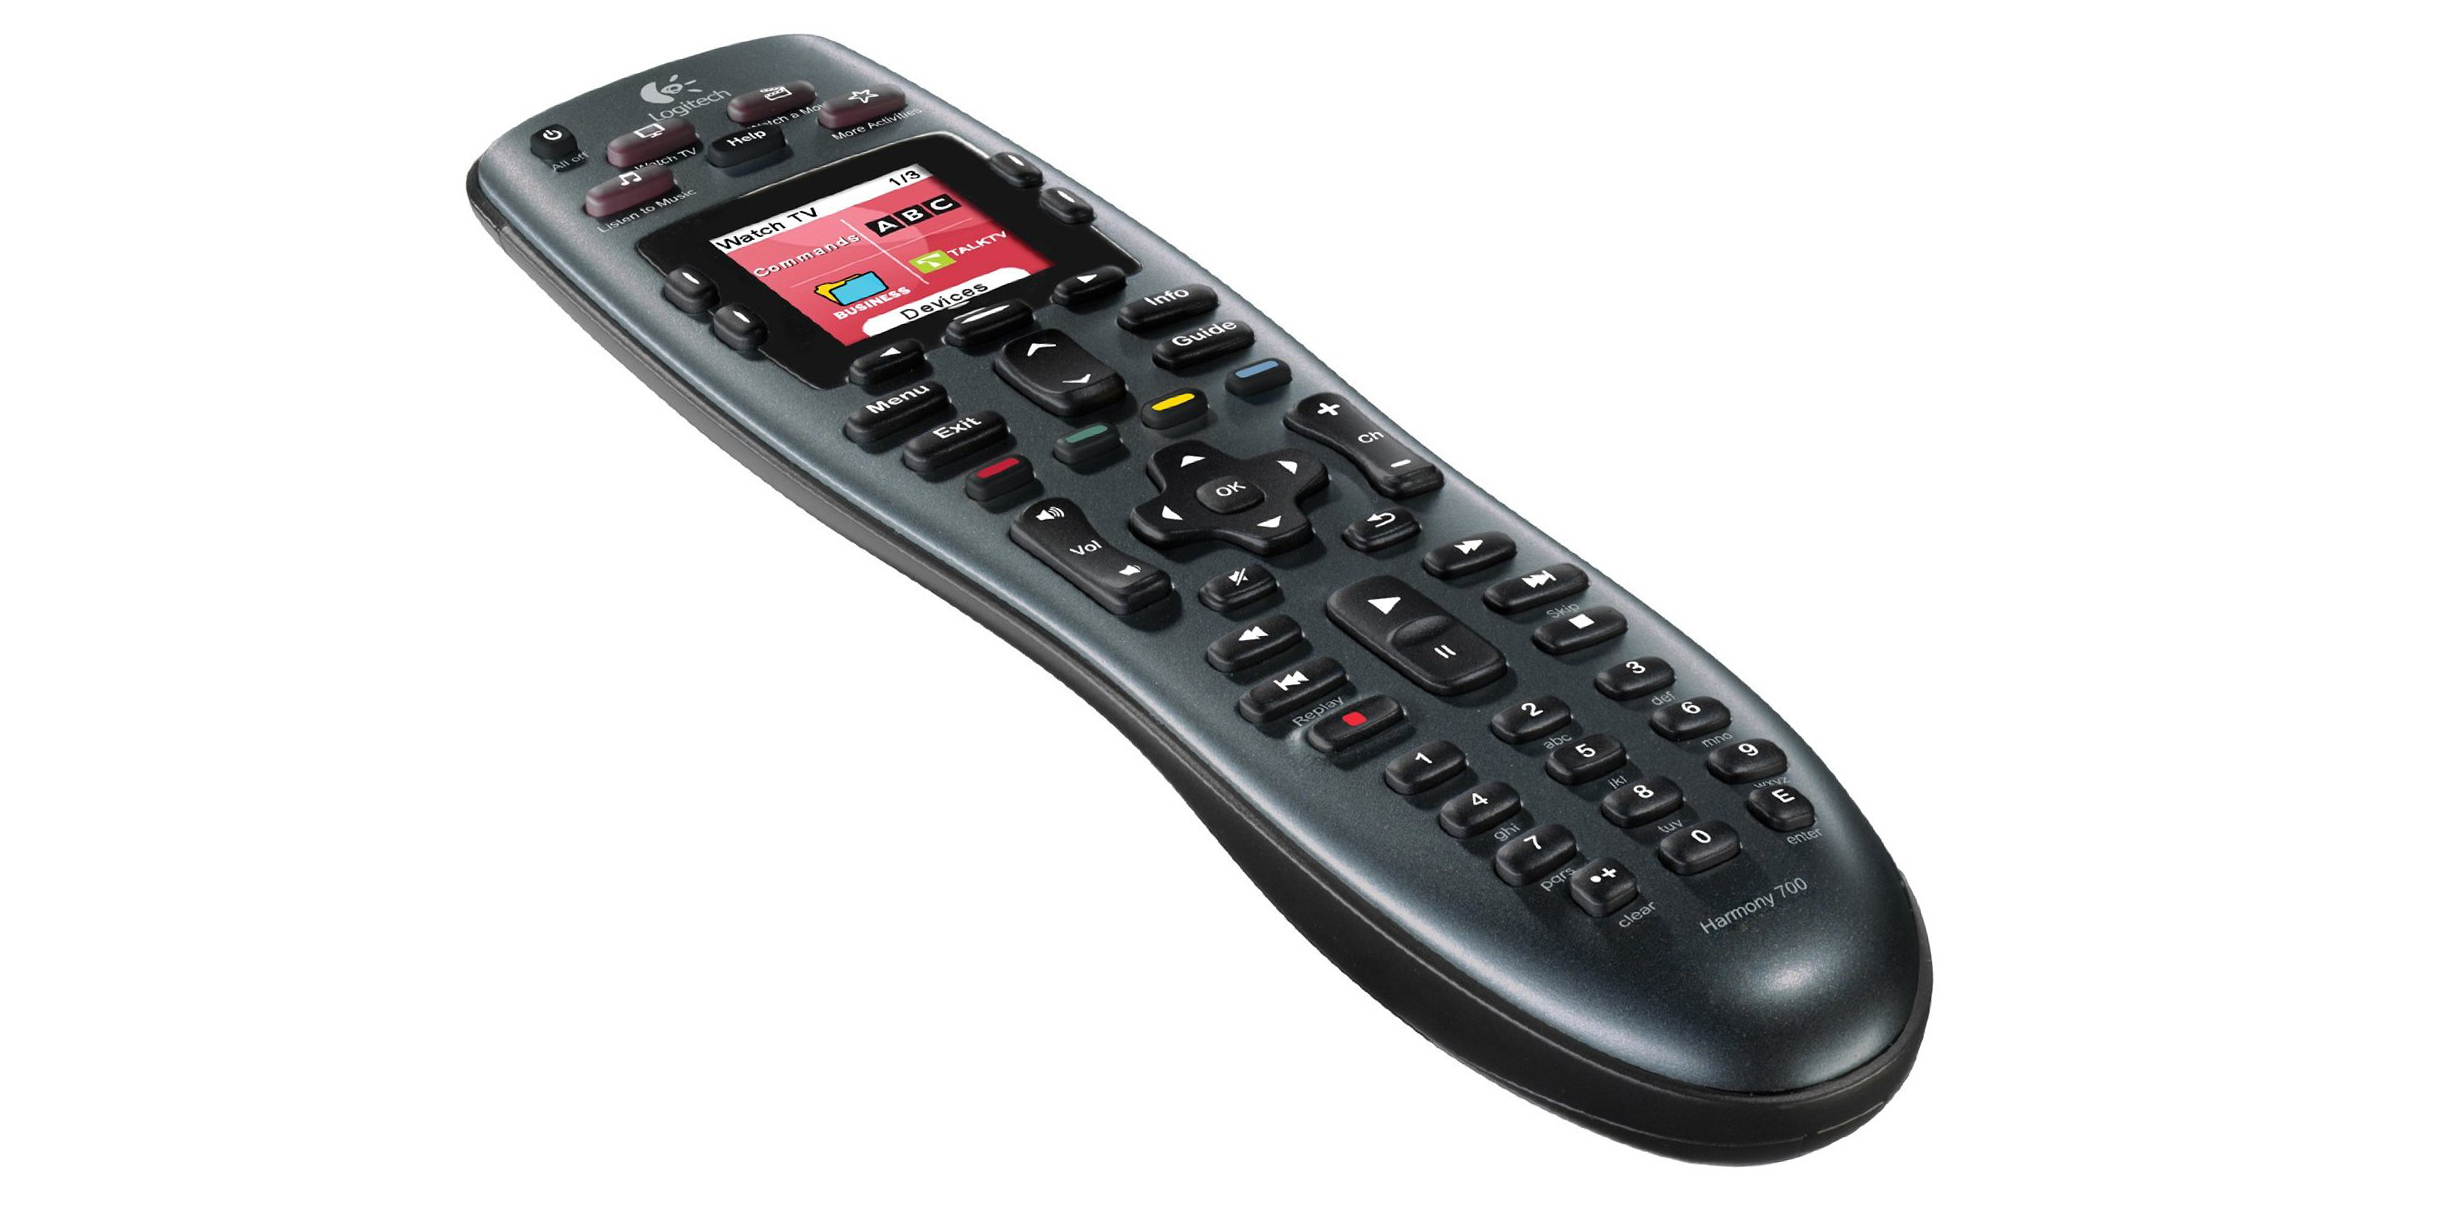 Control up to 8 devices w/ Logitech's Harmony 700 Remote at $60 shipped (25% off)